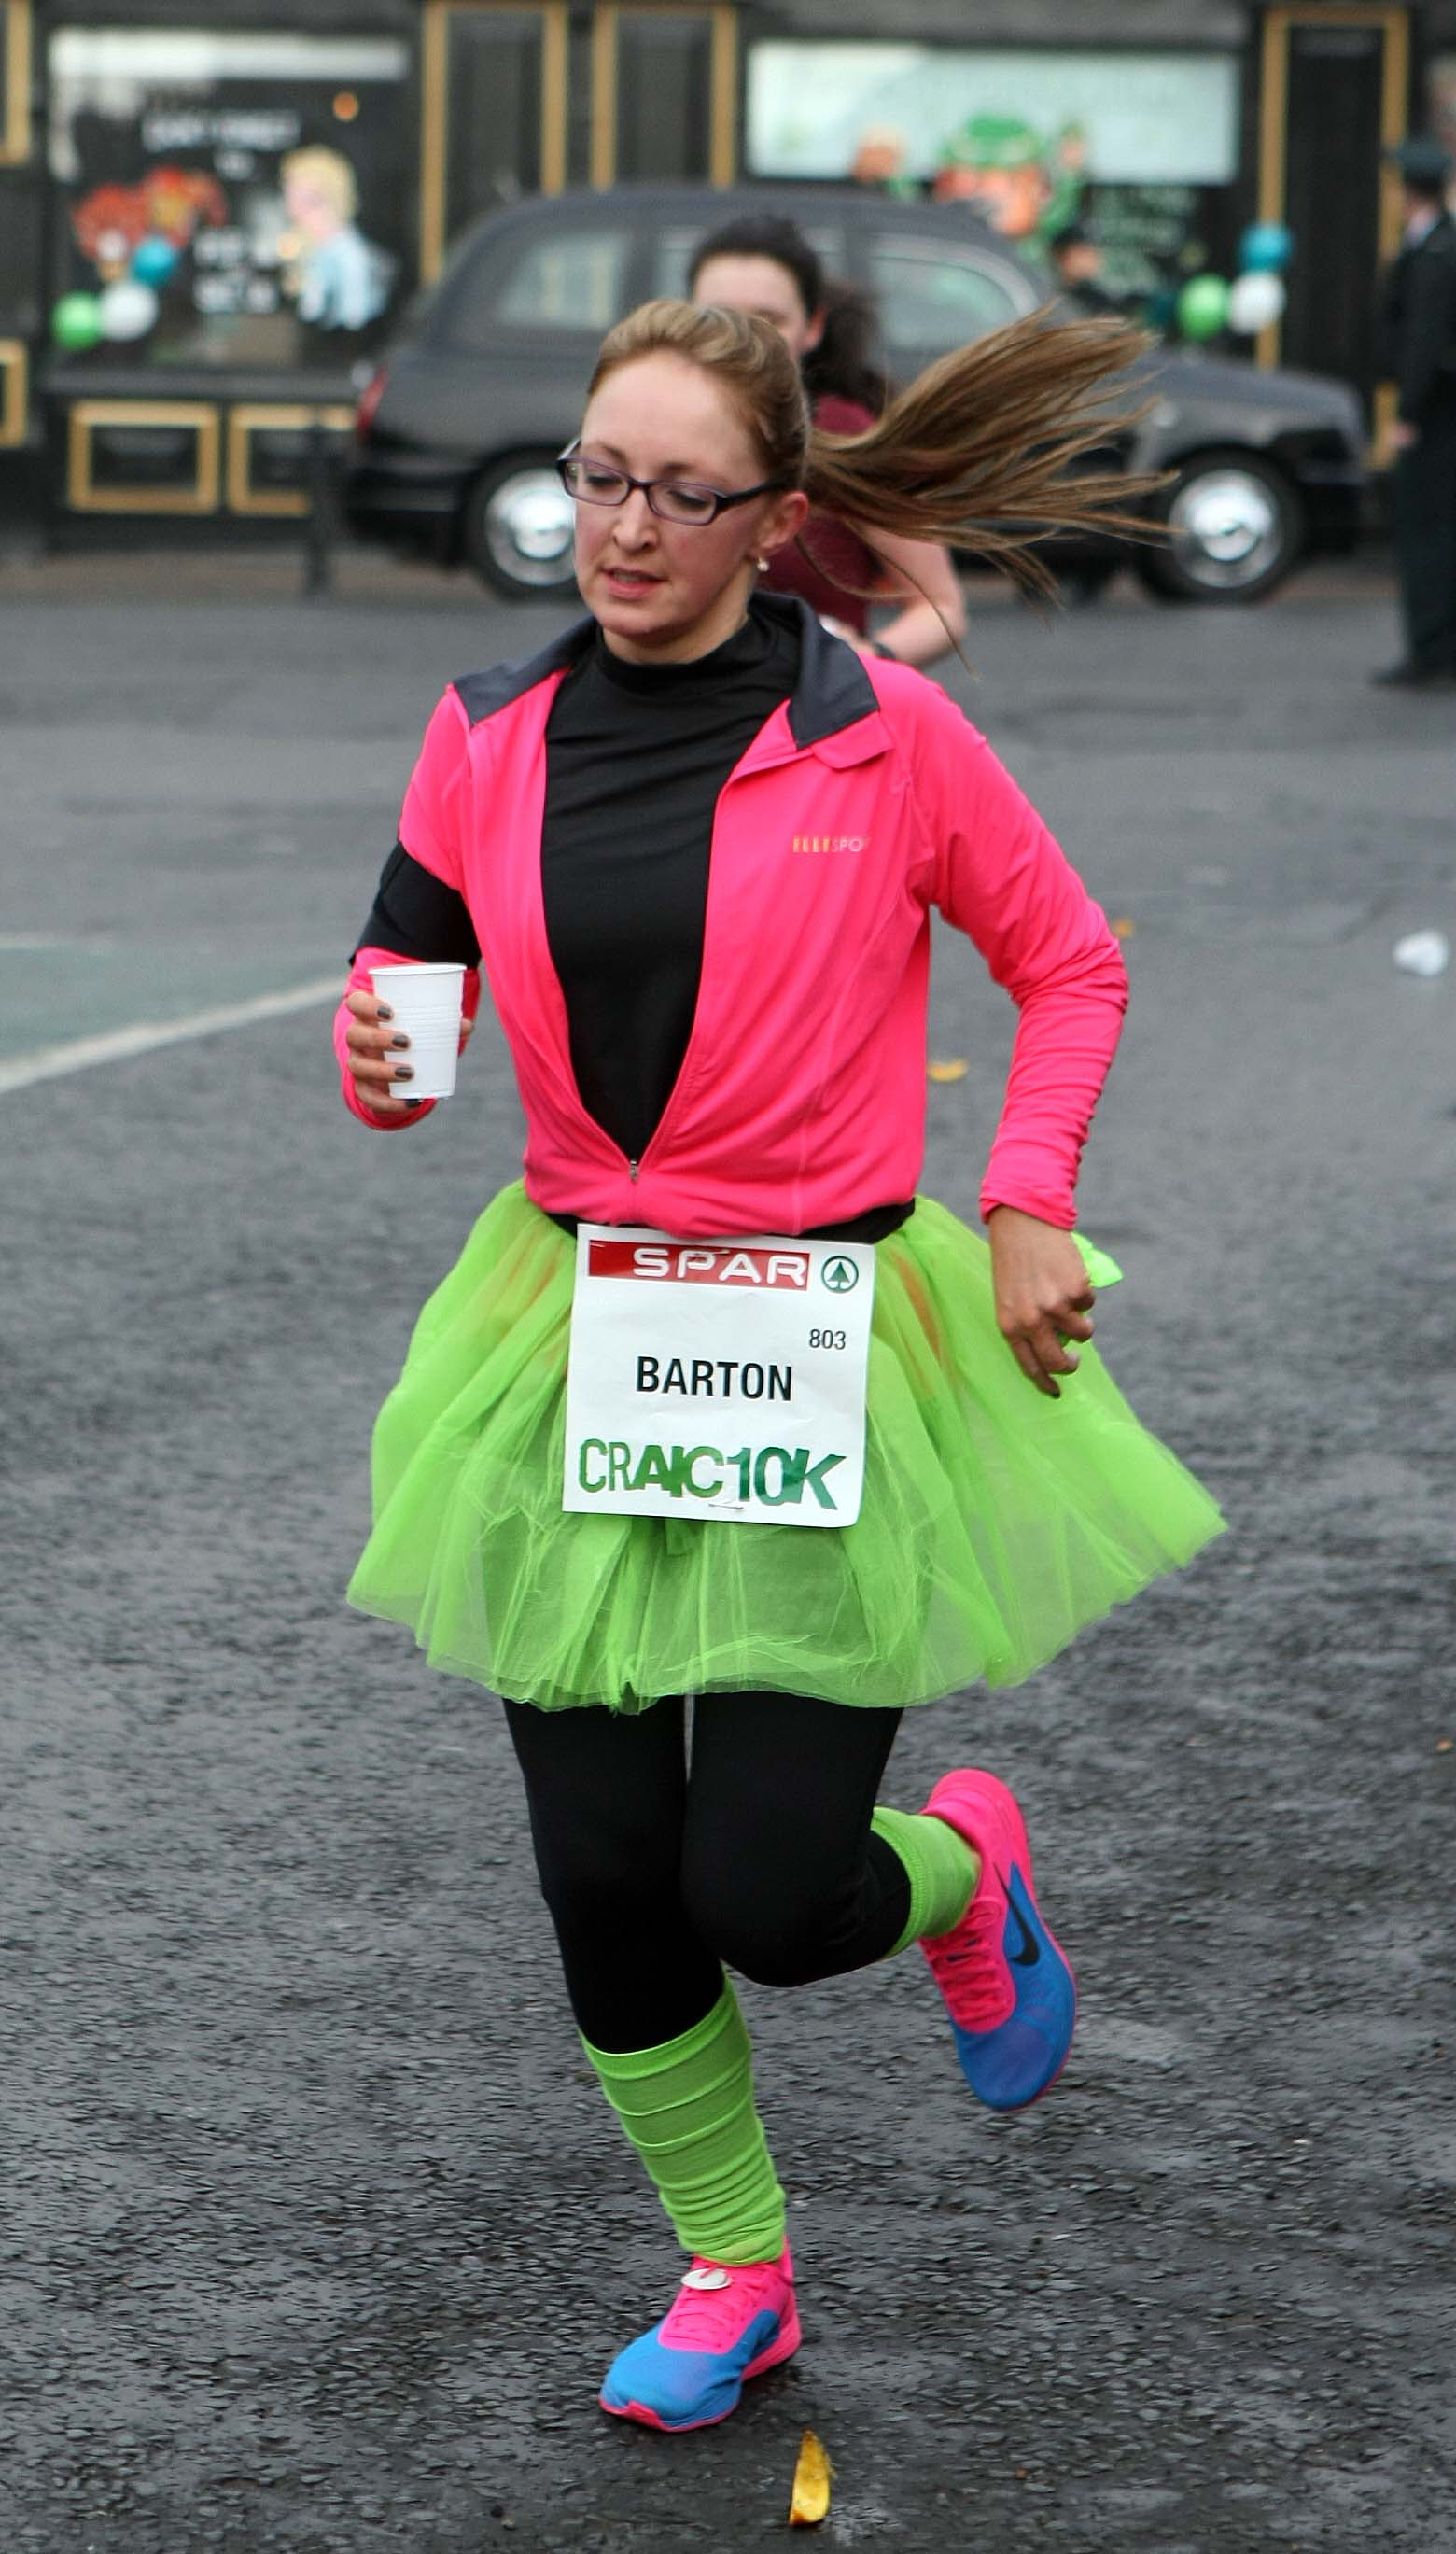 Tuesday 17-3-2015St Patrick's DaySPAR Craic 10k BelfastFancy dress fun for the runSparCraic10K170315FP023